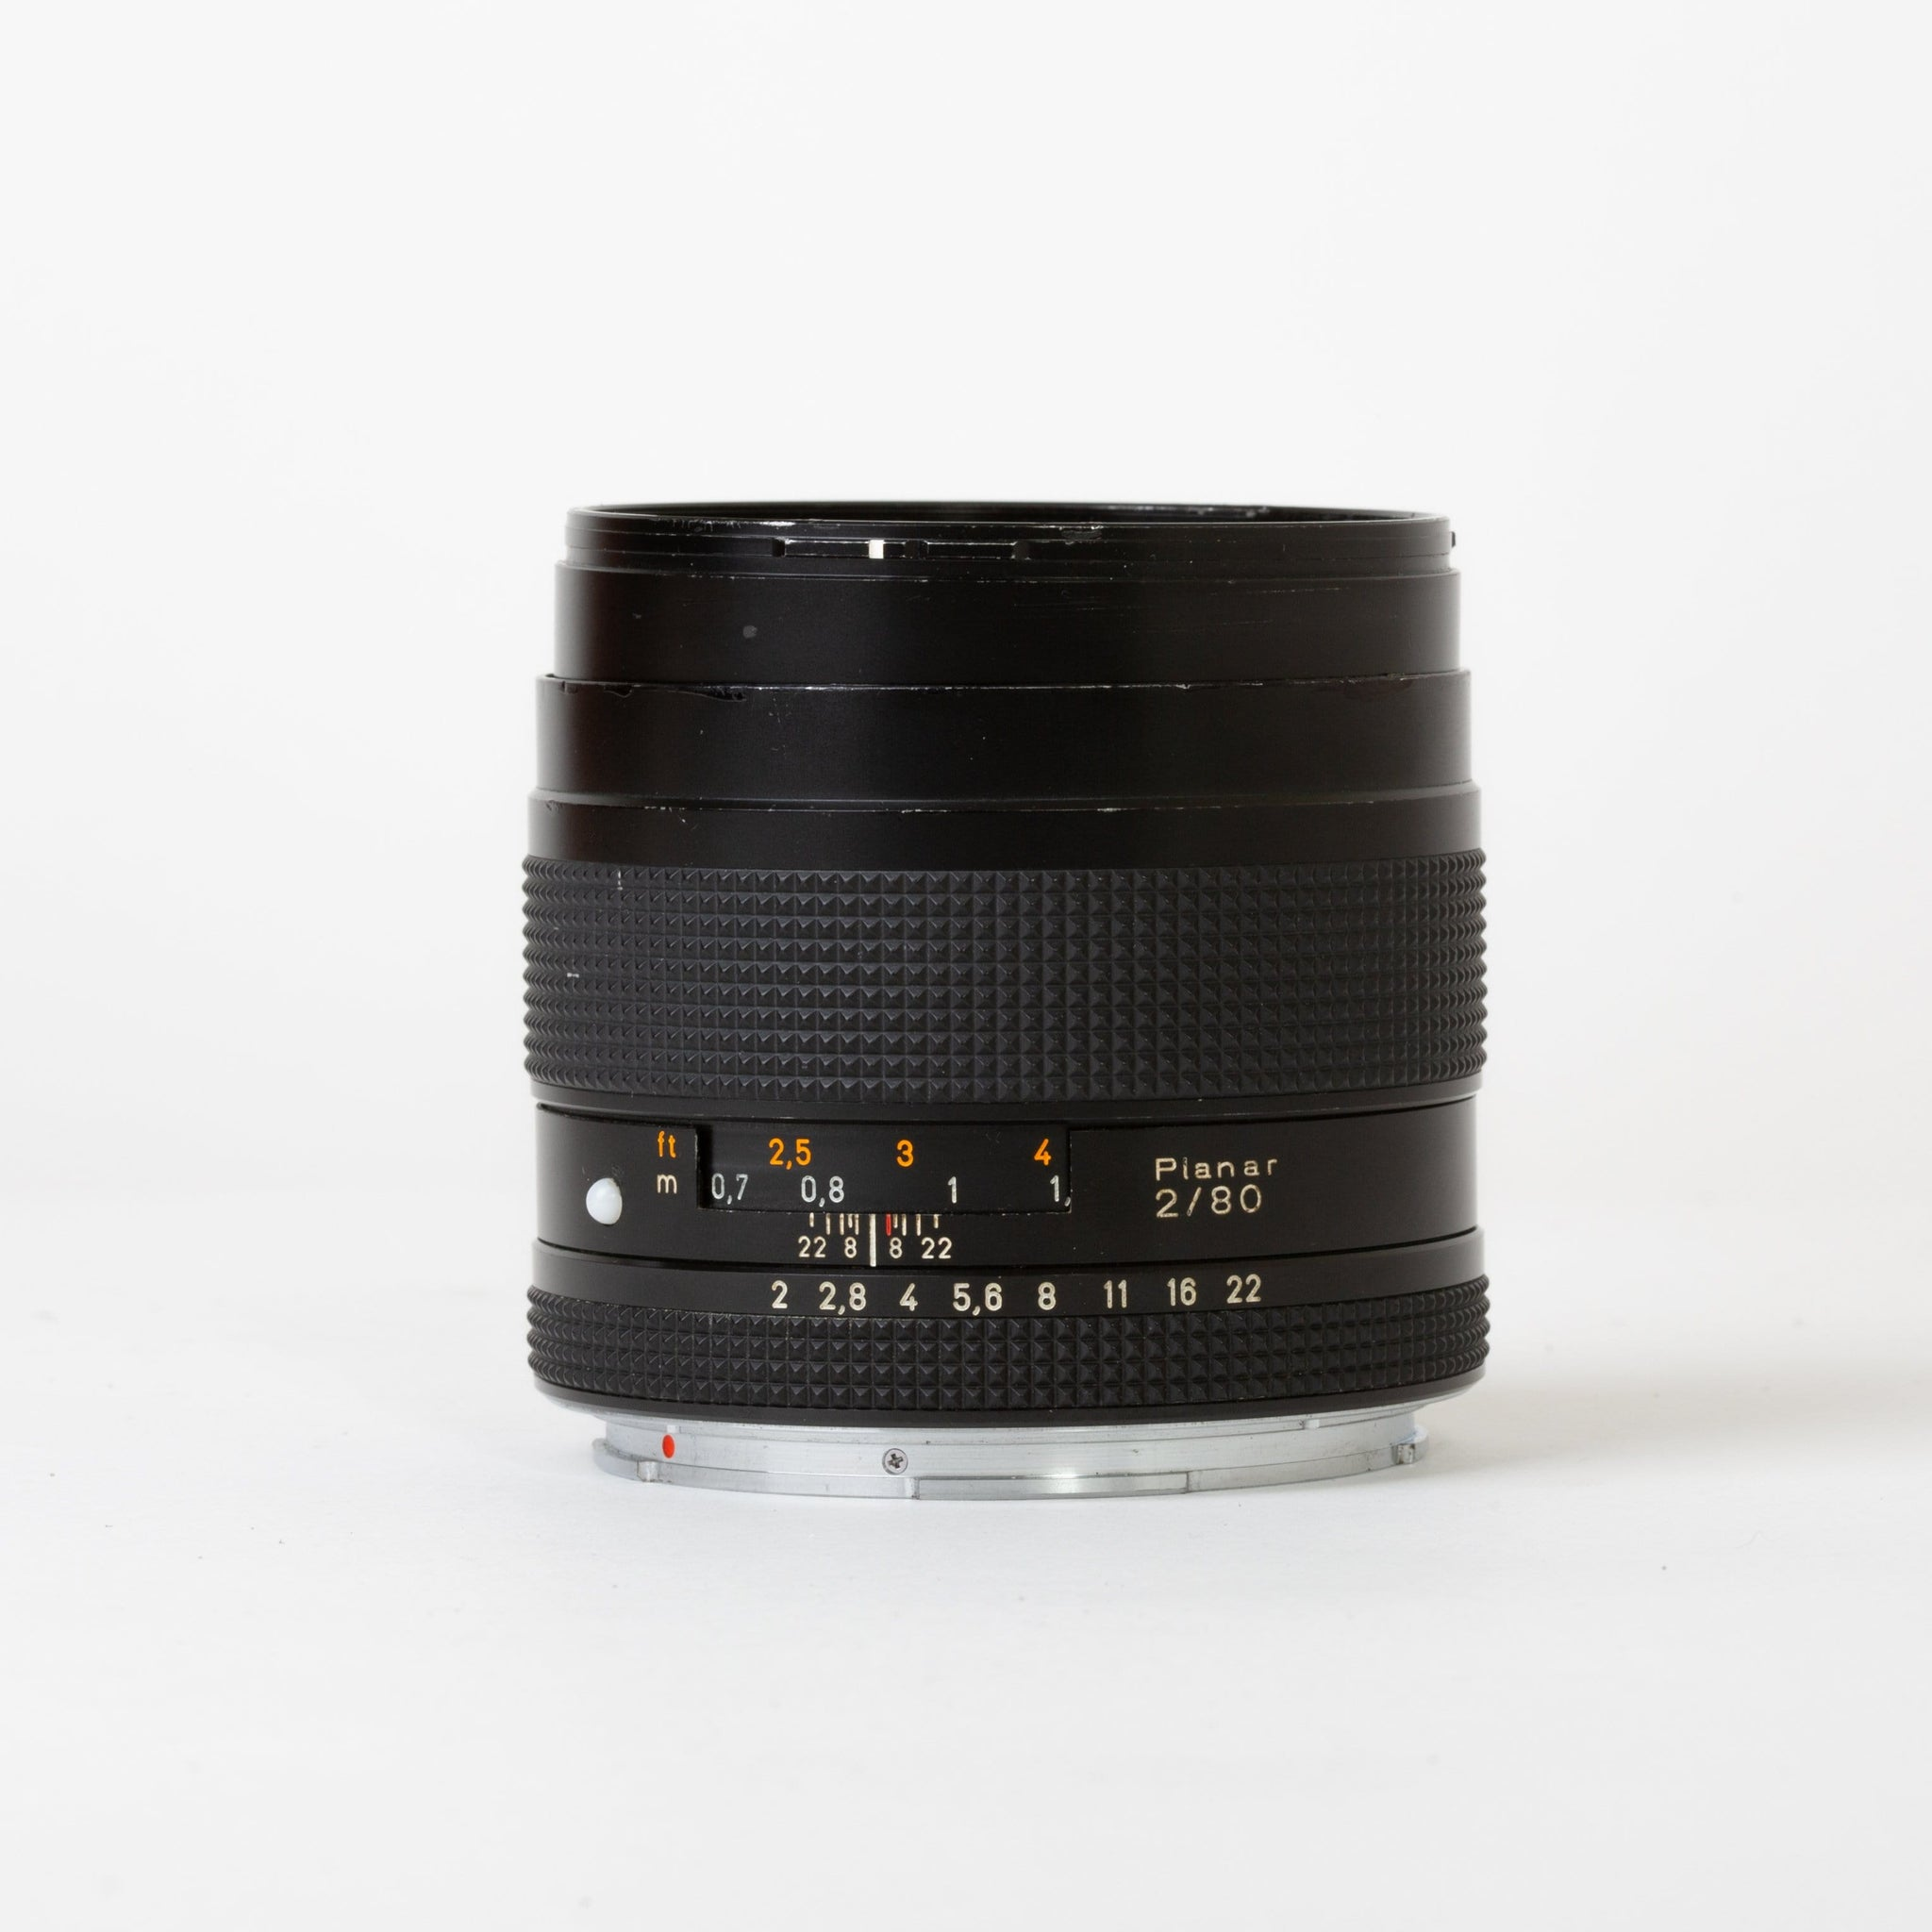 Zeiss Planar 80mm f/2 T* Lens for Contax 645